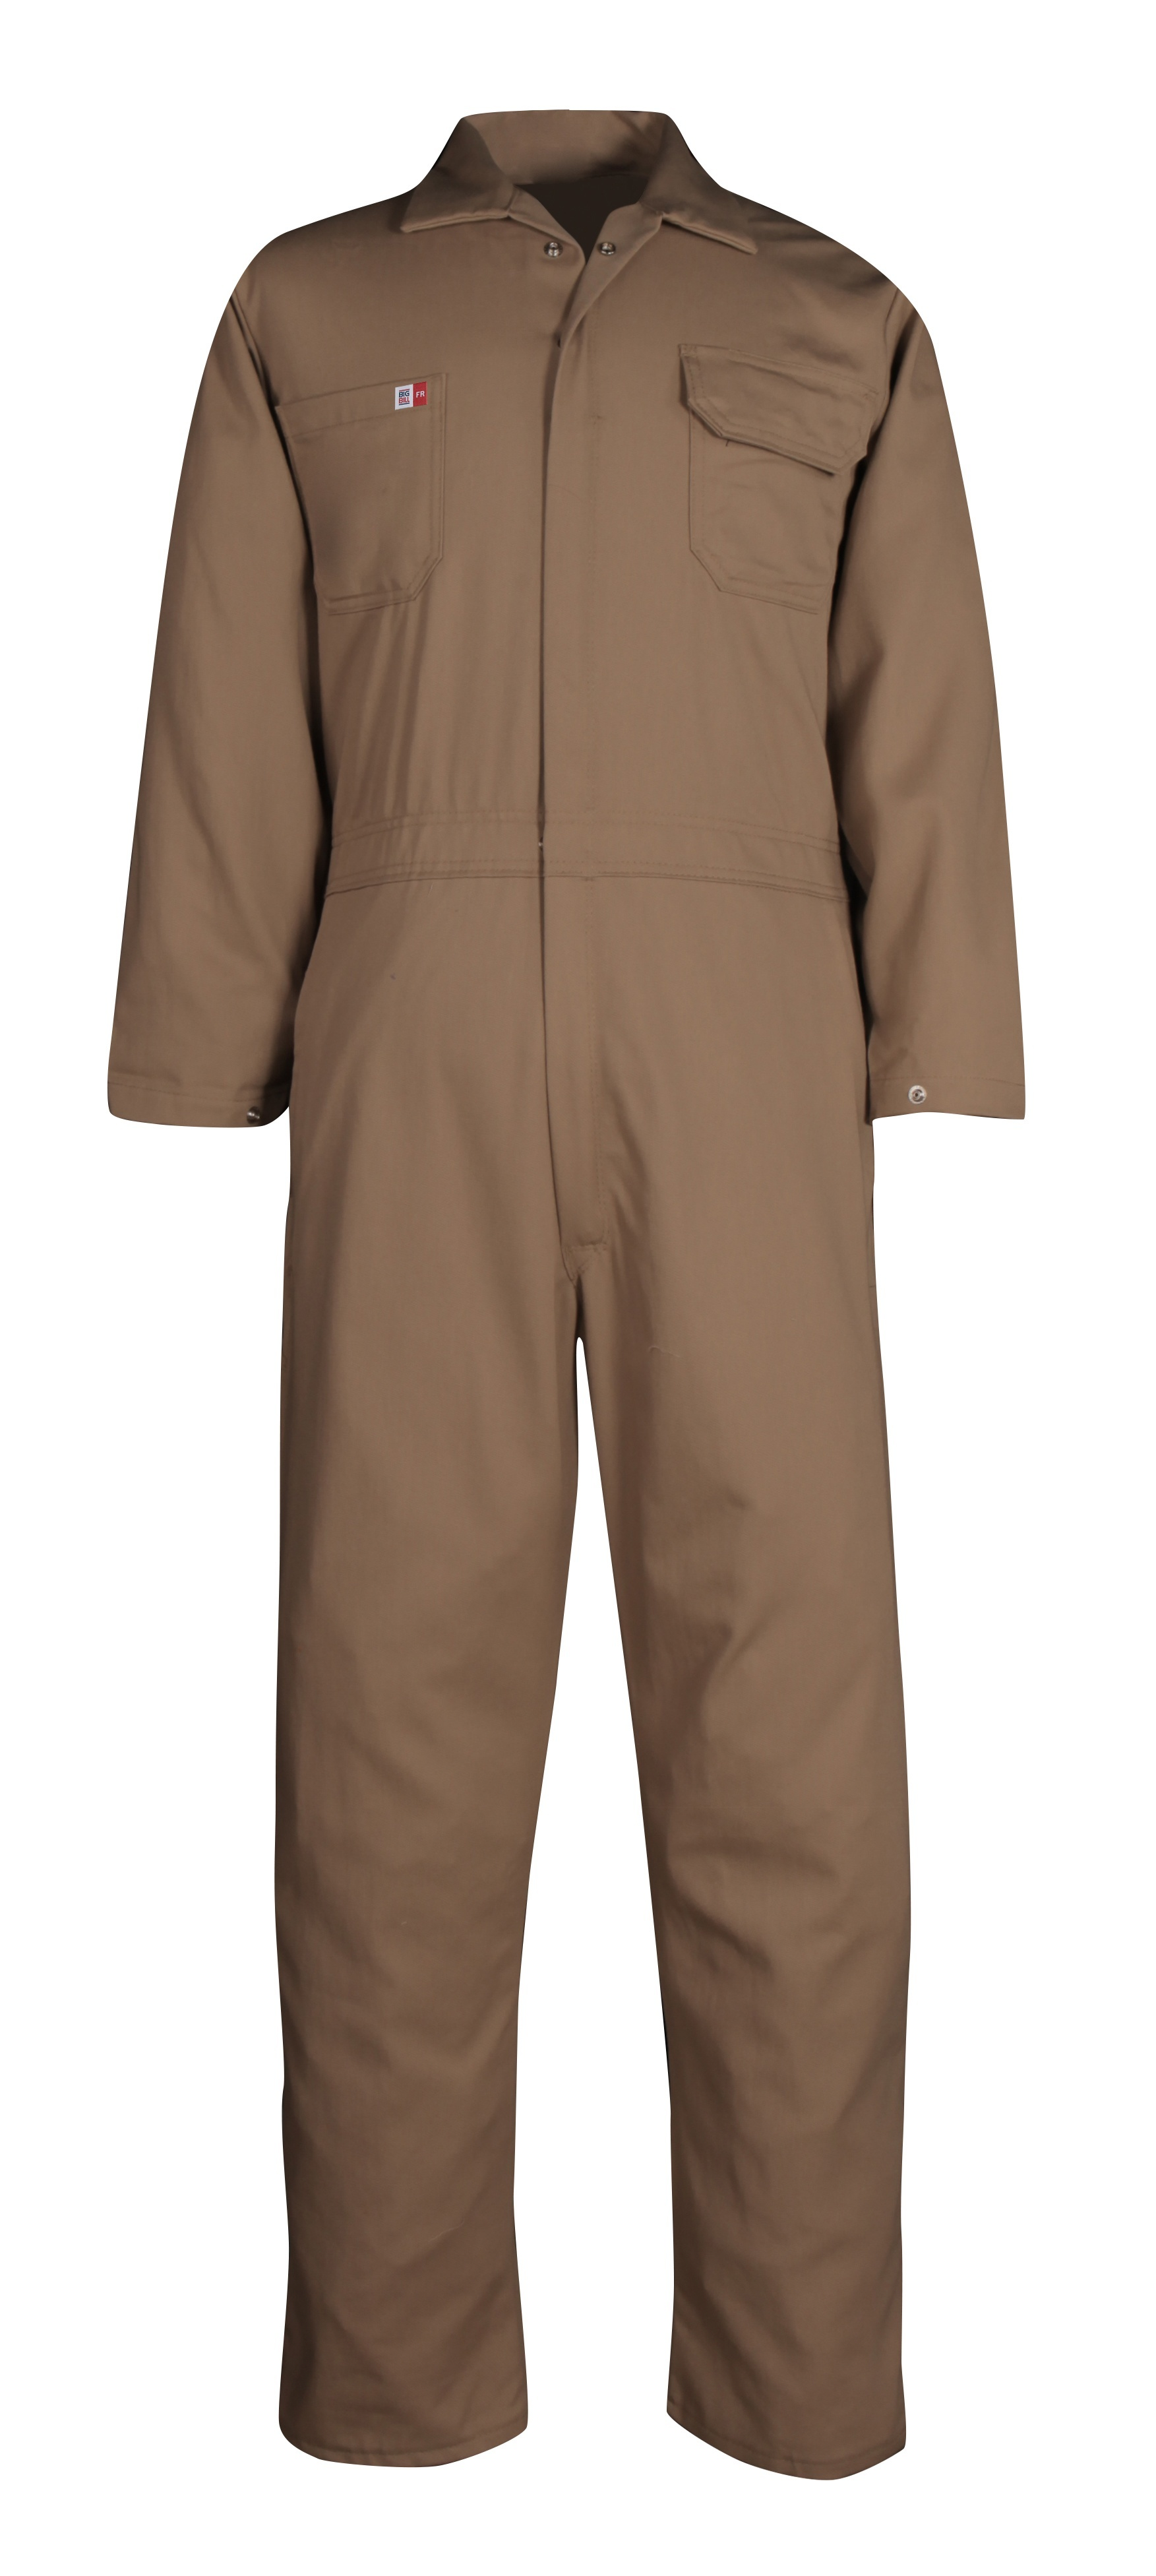 7 oz Westex UltraSoft® Unlined Work Coverall -